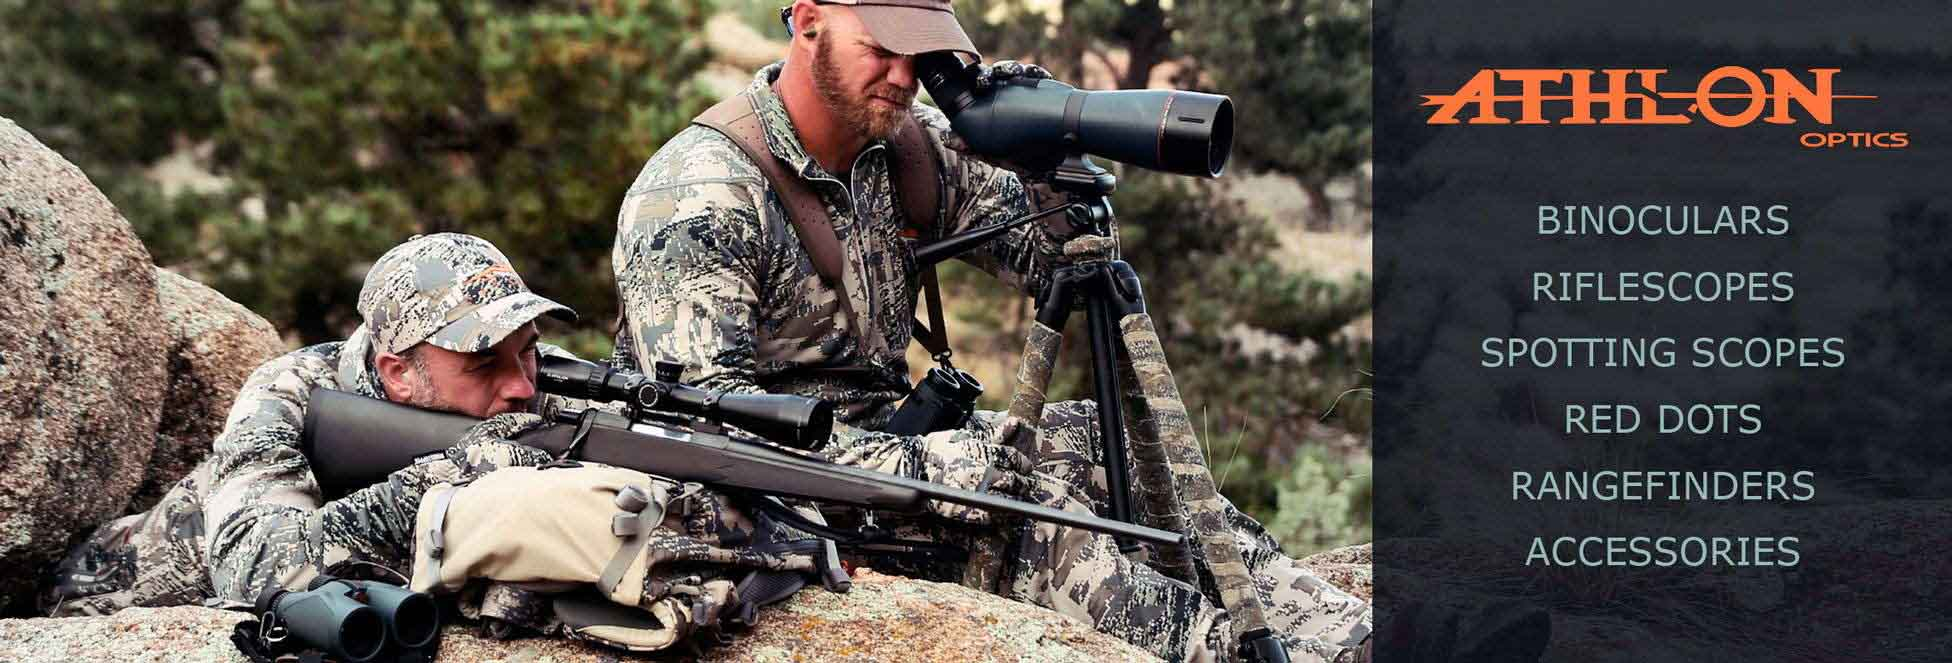 Athlon Optics Products